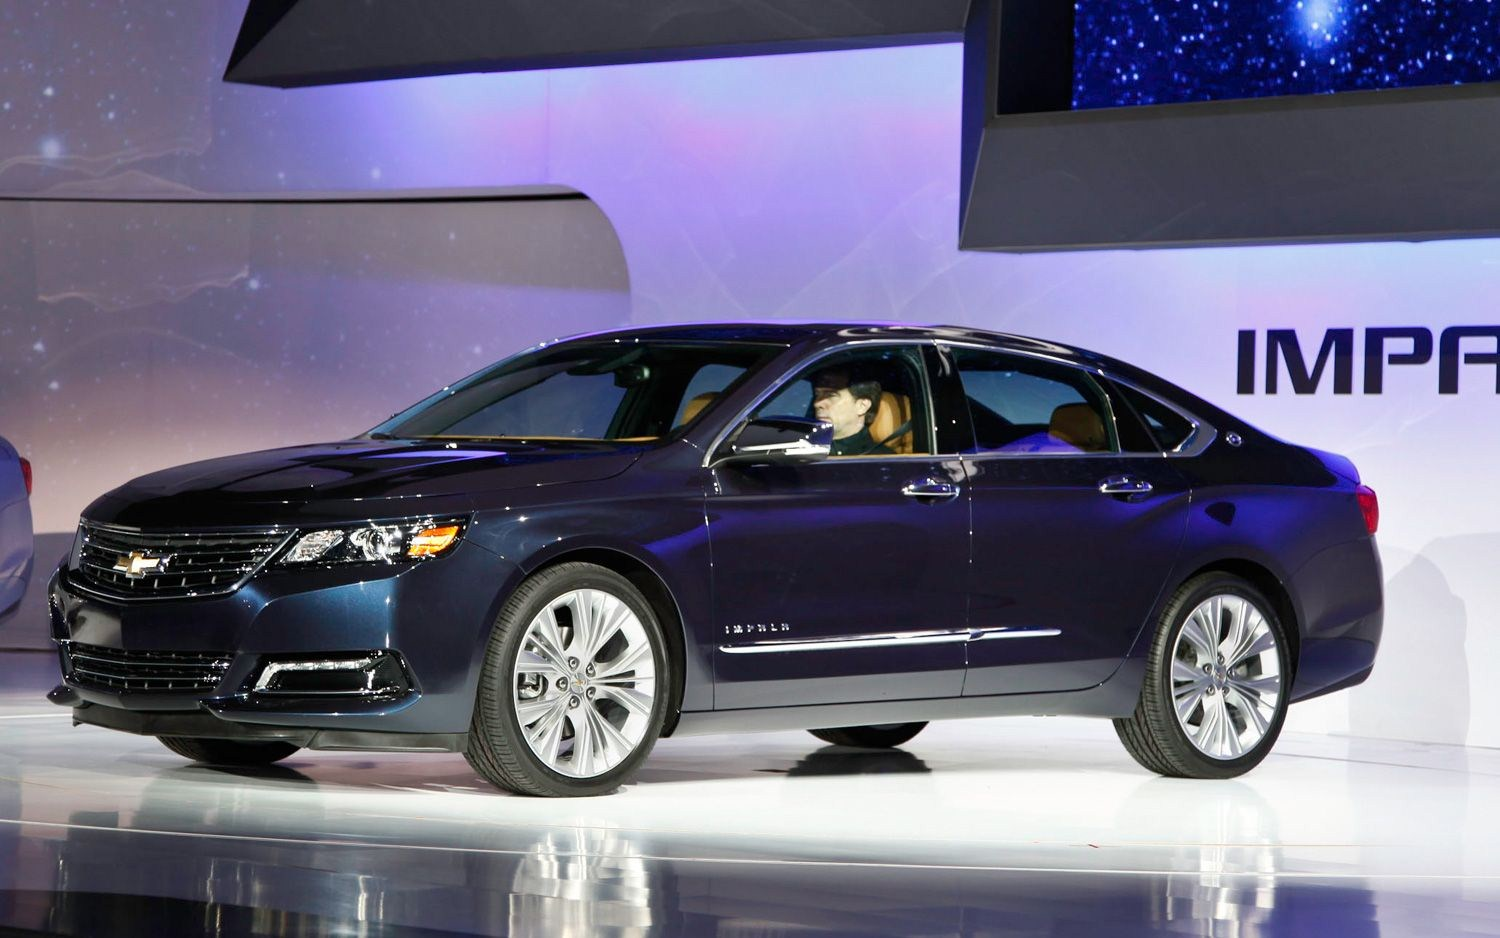 2015 Chevrolet Impala SS Car Review